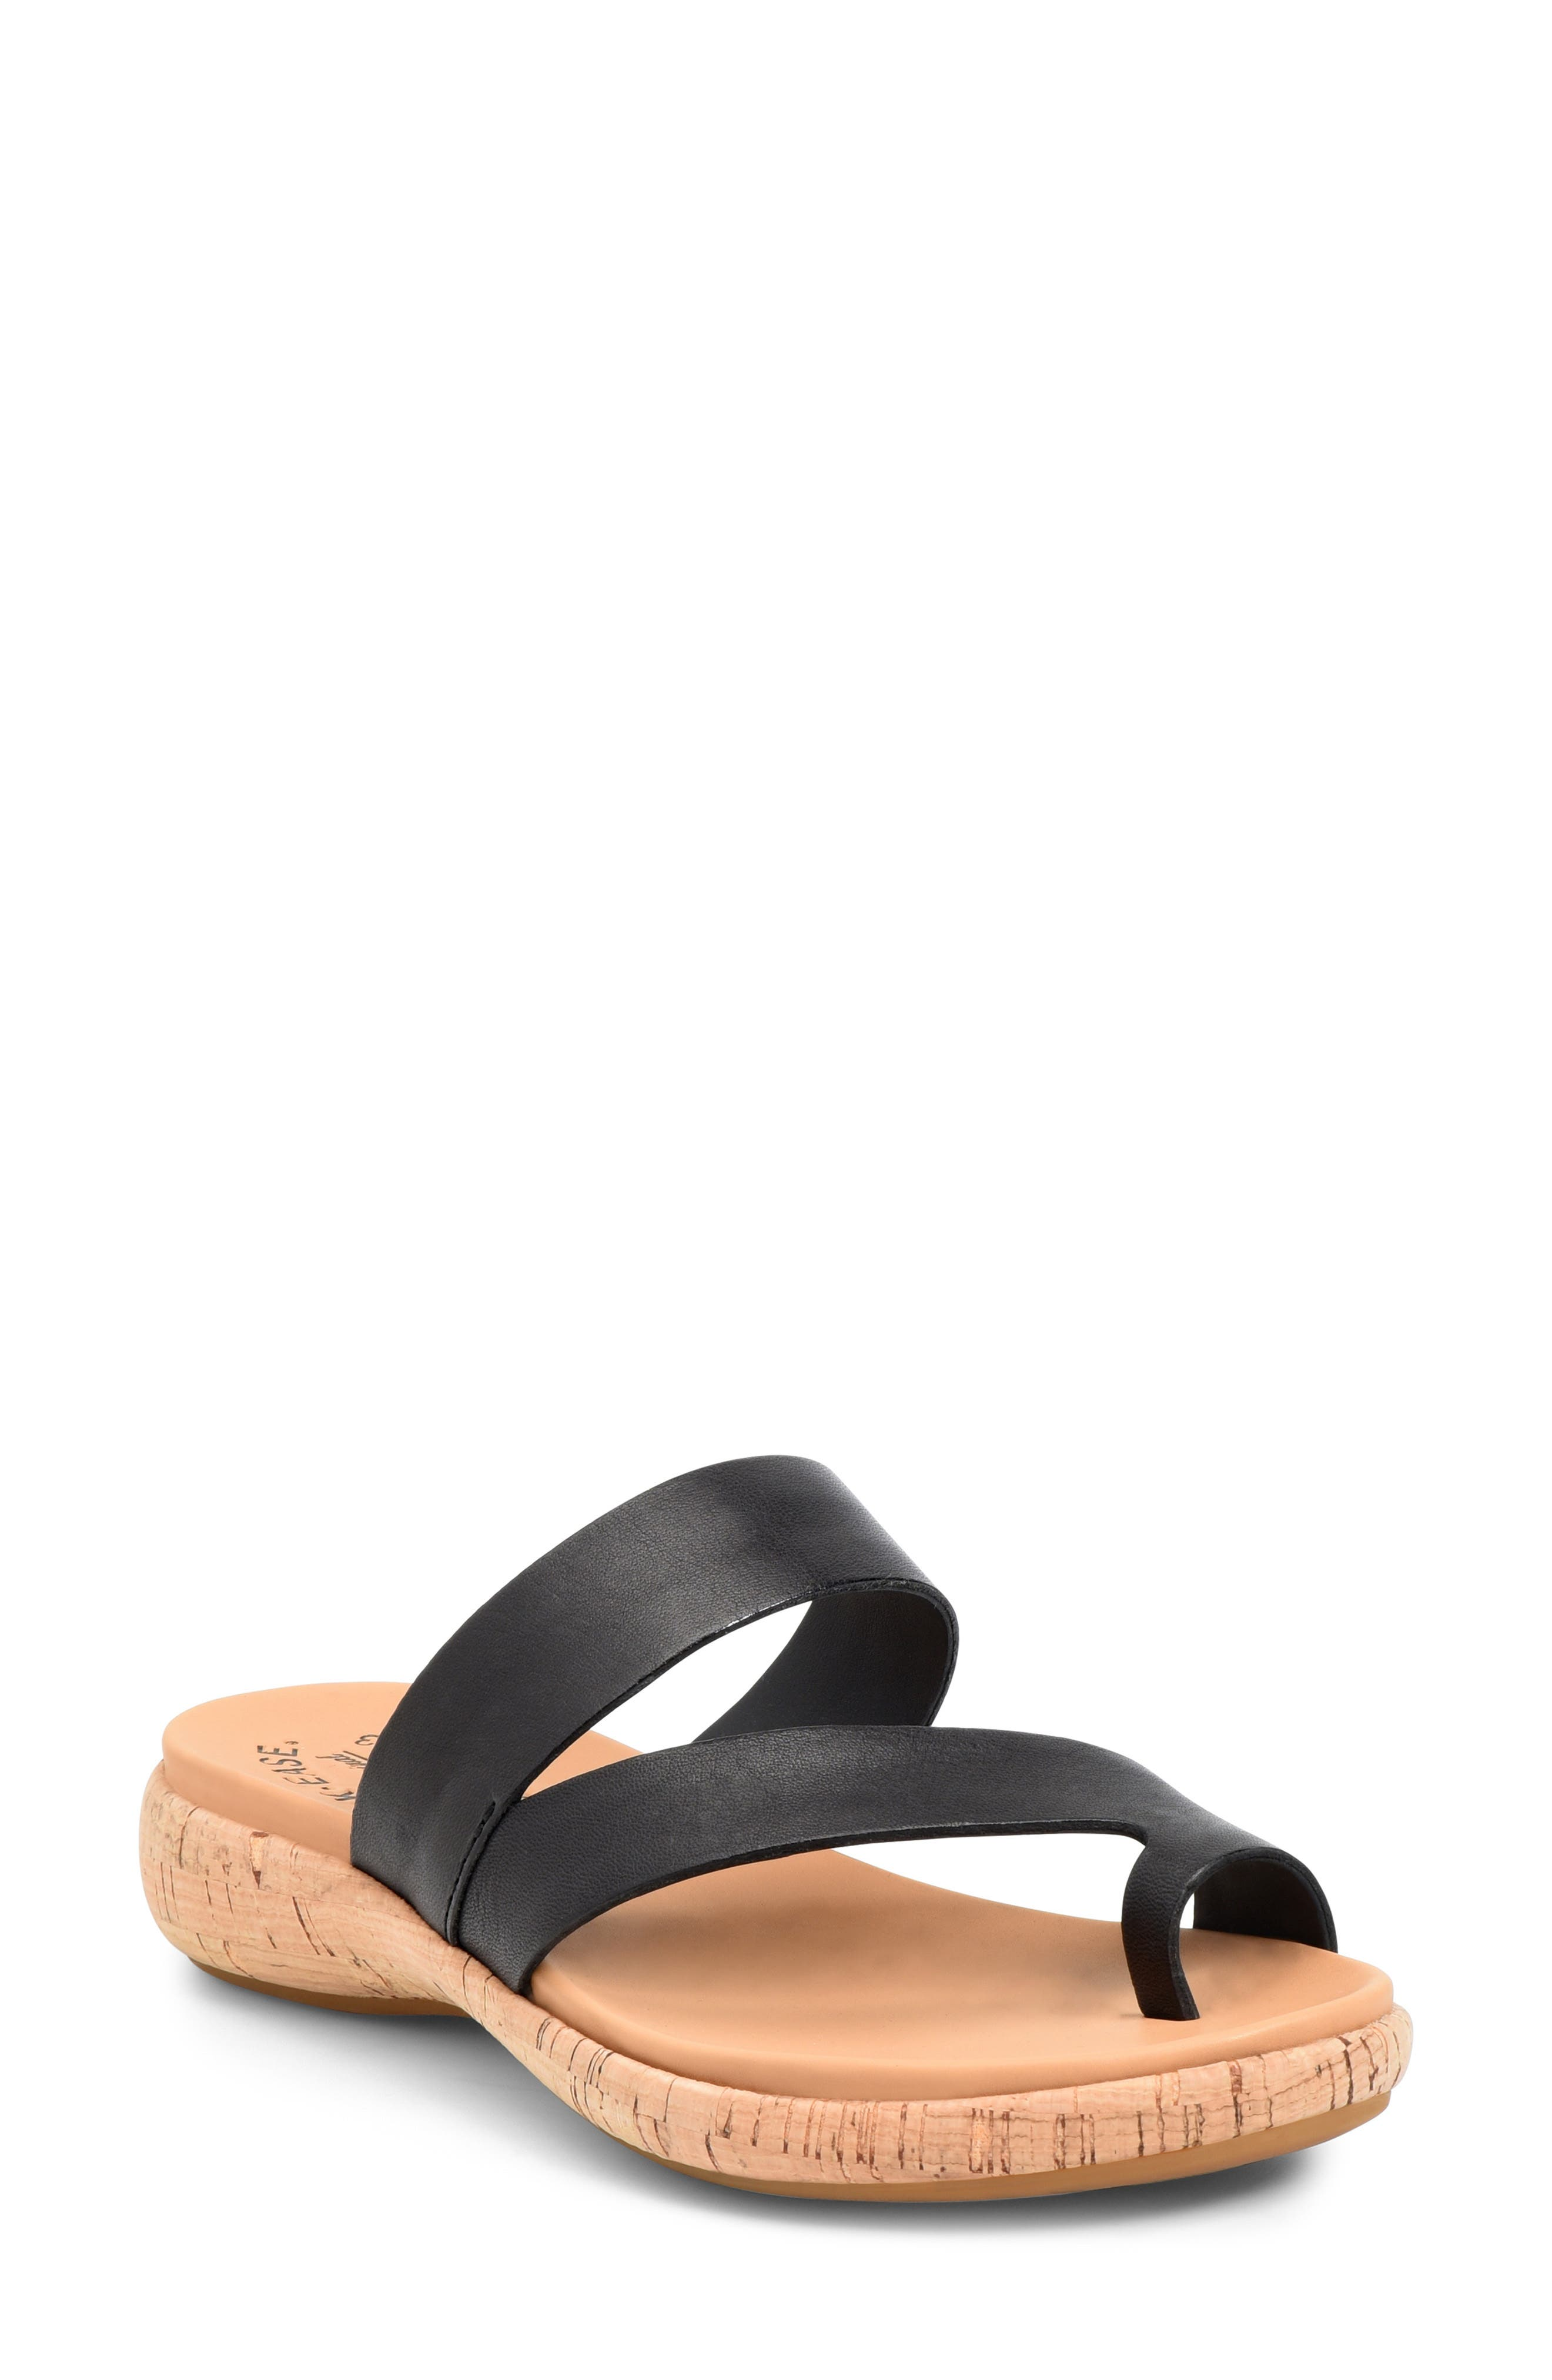 Wide leather straps and a toe loop add modern sophistication to a well-cushioned footbed set on a cork-textured sole. Style Name: Kork-Ease Elaver Slide Sandal (Women). Style Number: 6032799. Available in stores.